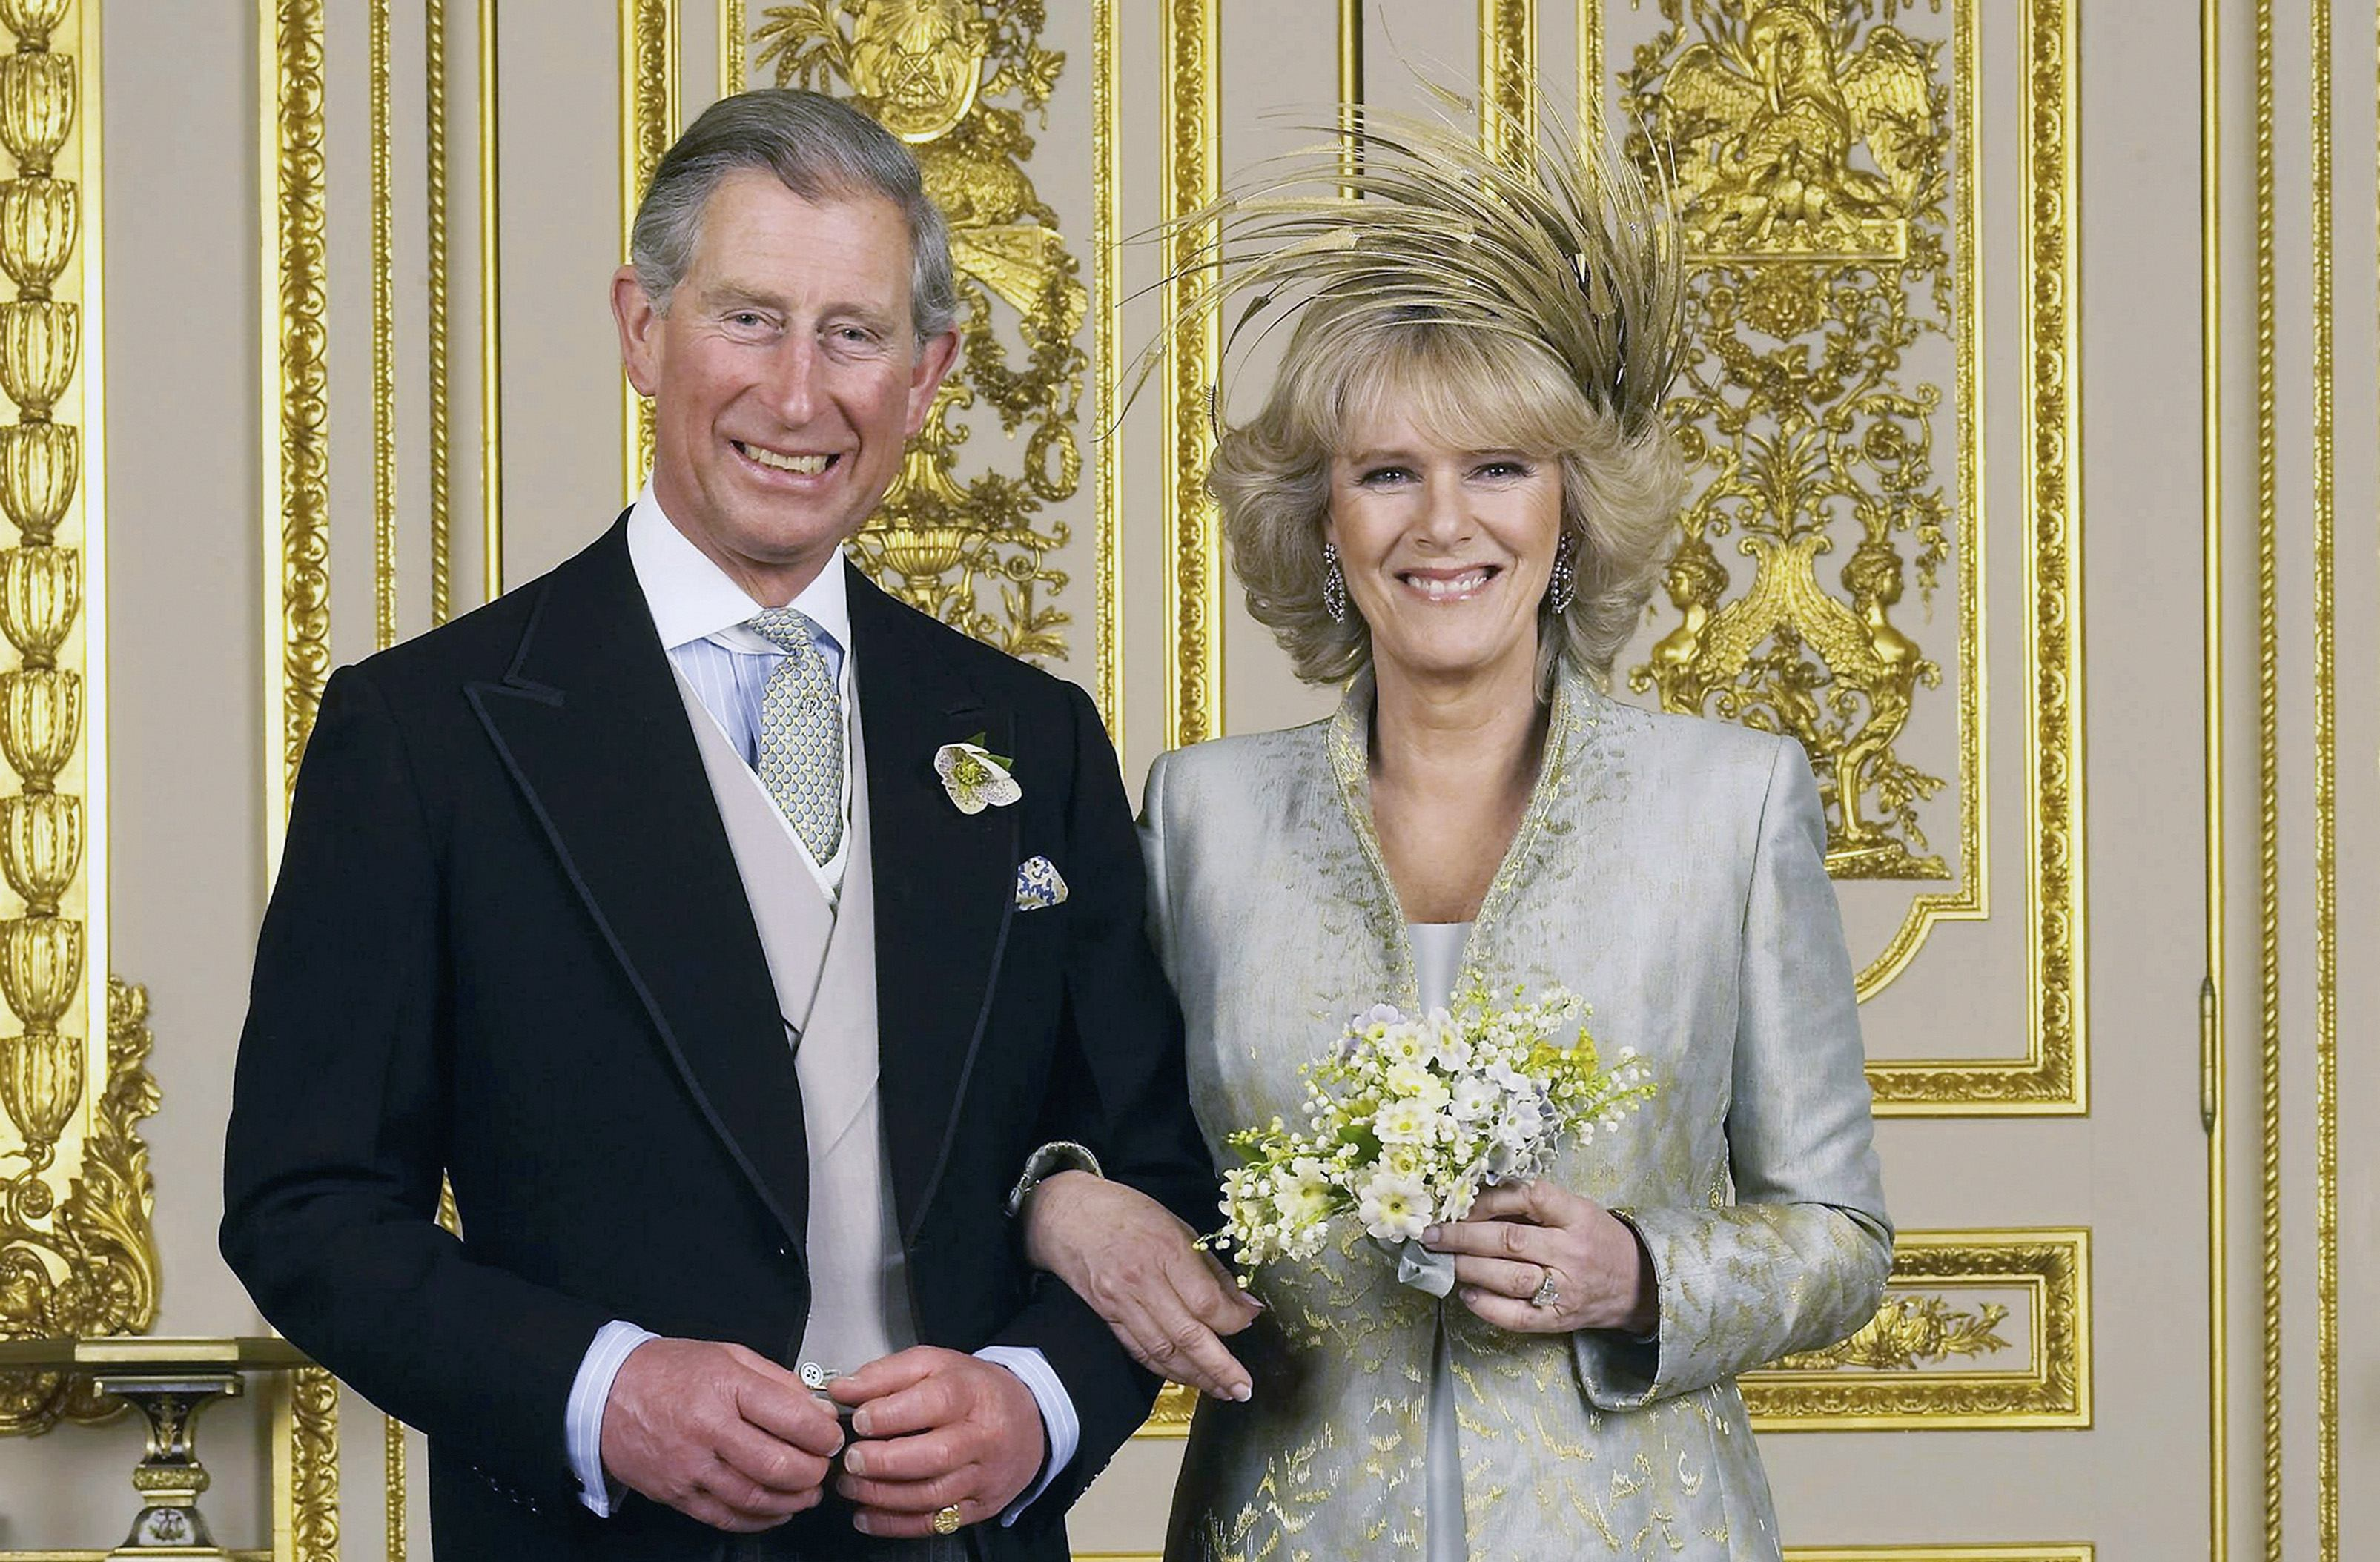 Camilla and Charles wedding